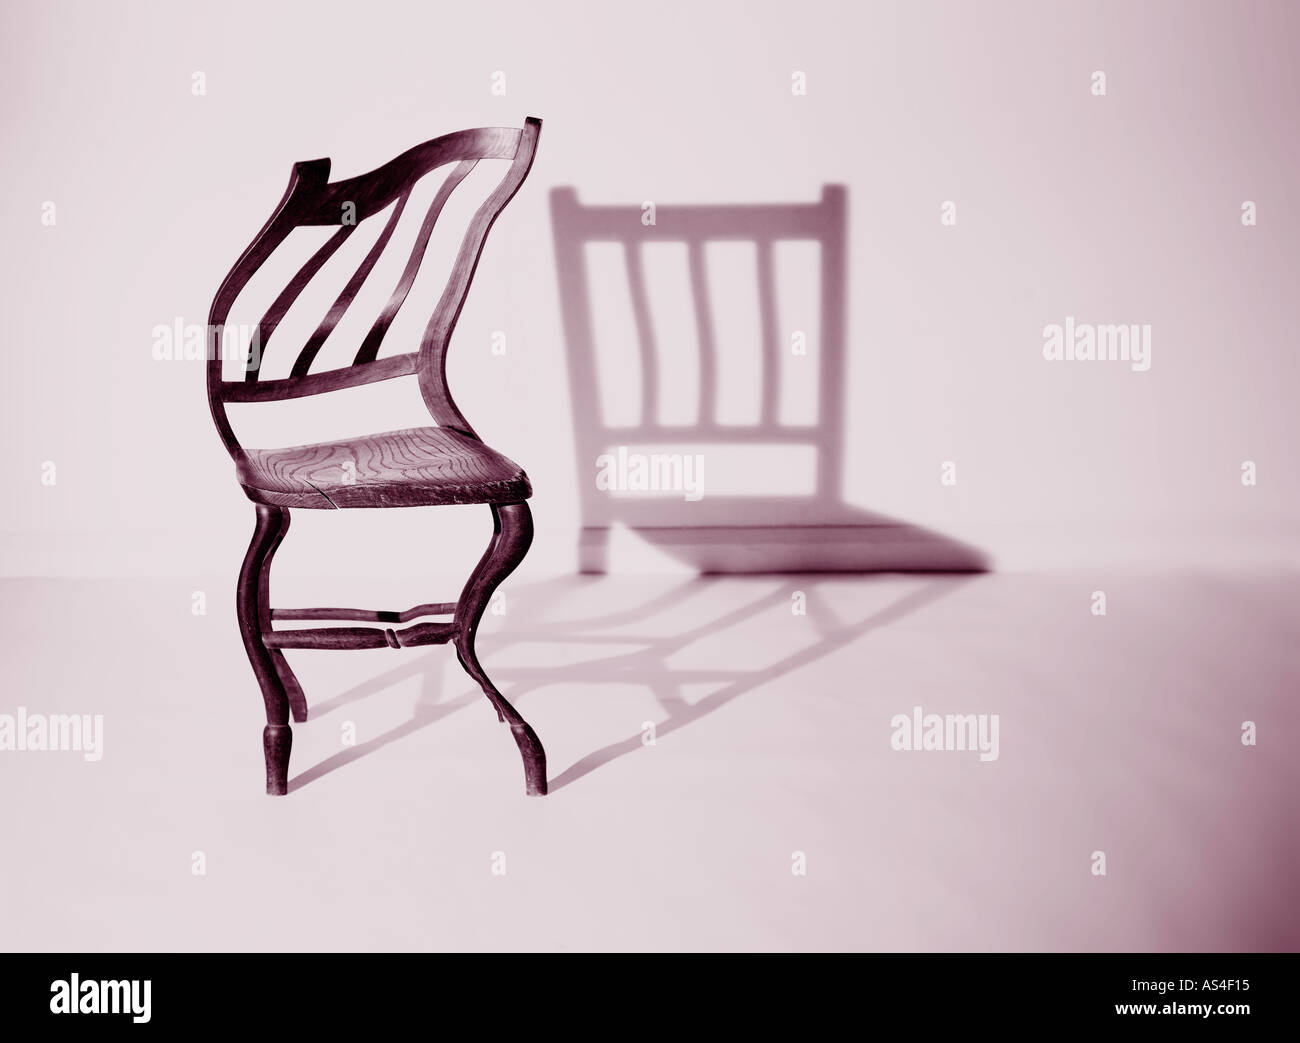 distorted chair with normal shadow - Stock Image